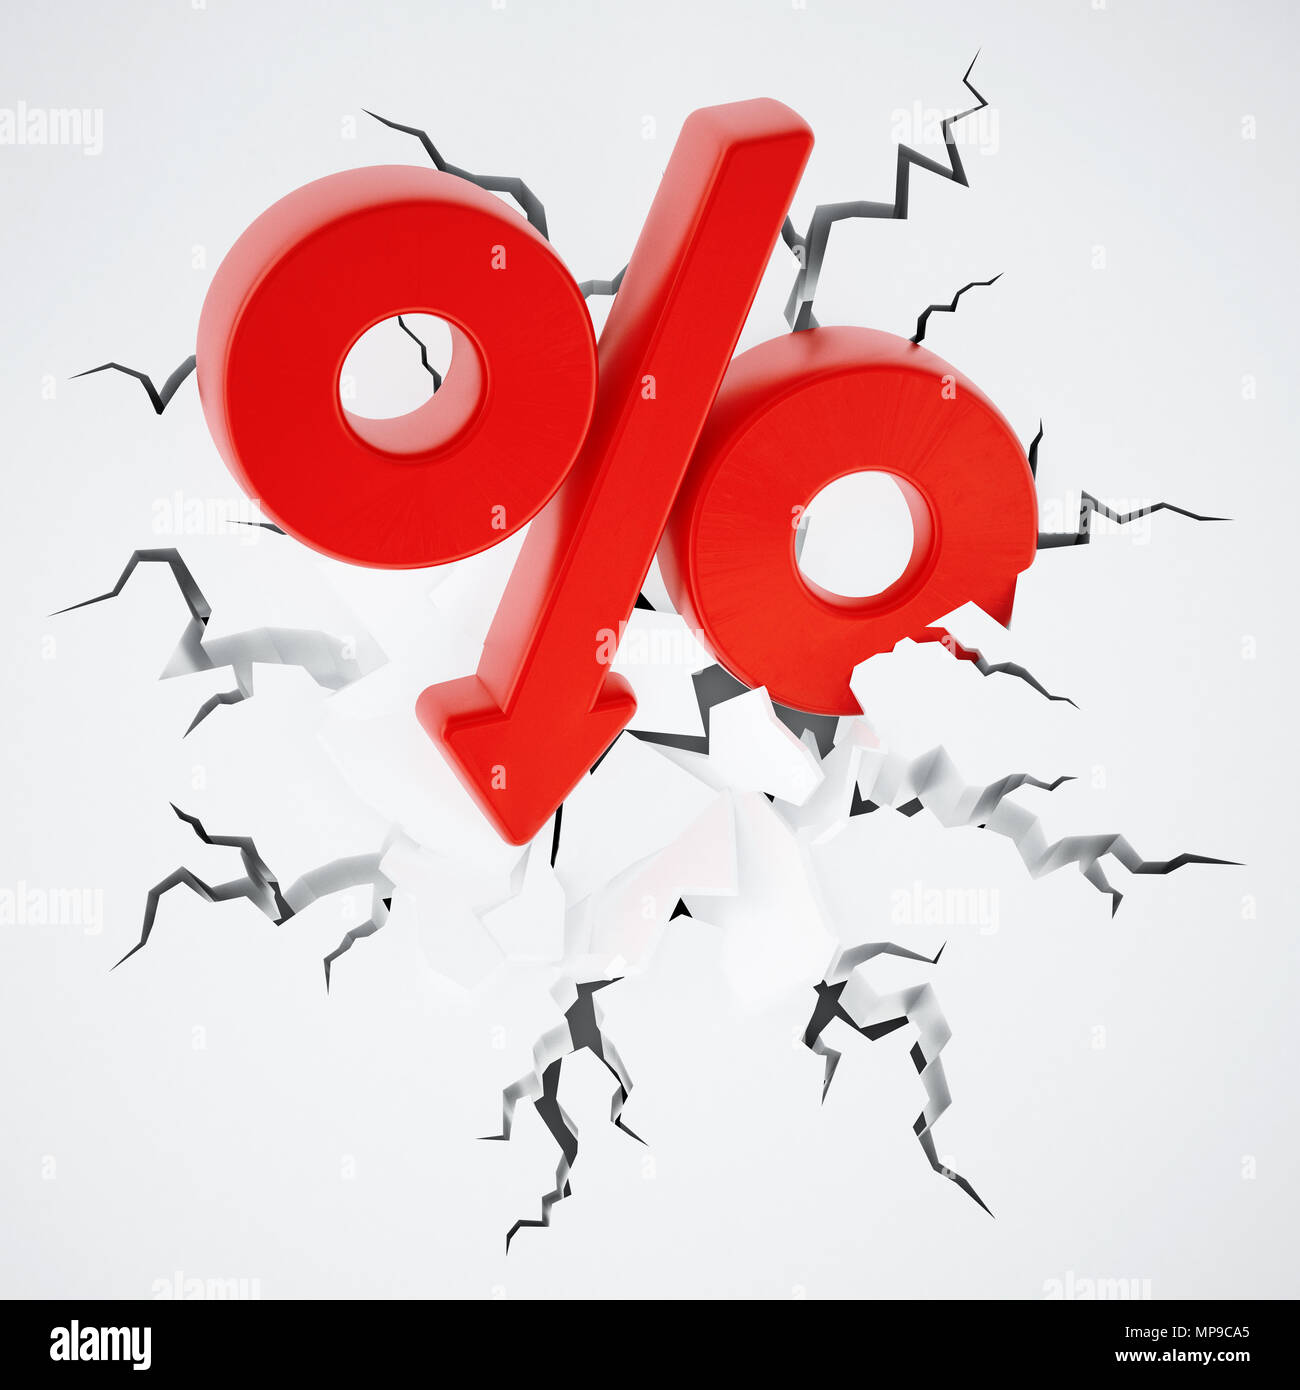 Percentage symbol with arrow on cracked ground. 3D illustration. - Stock Image